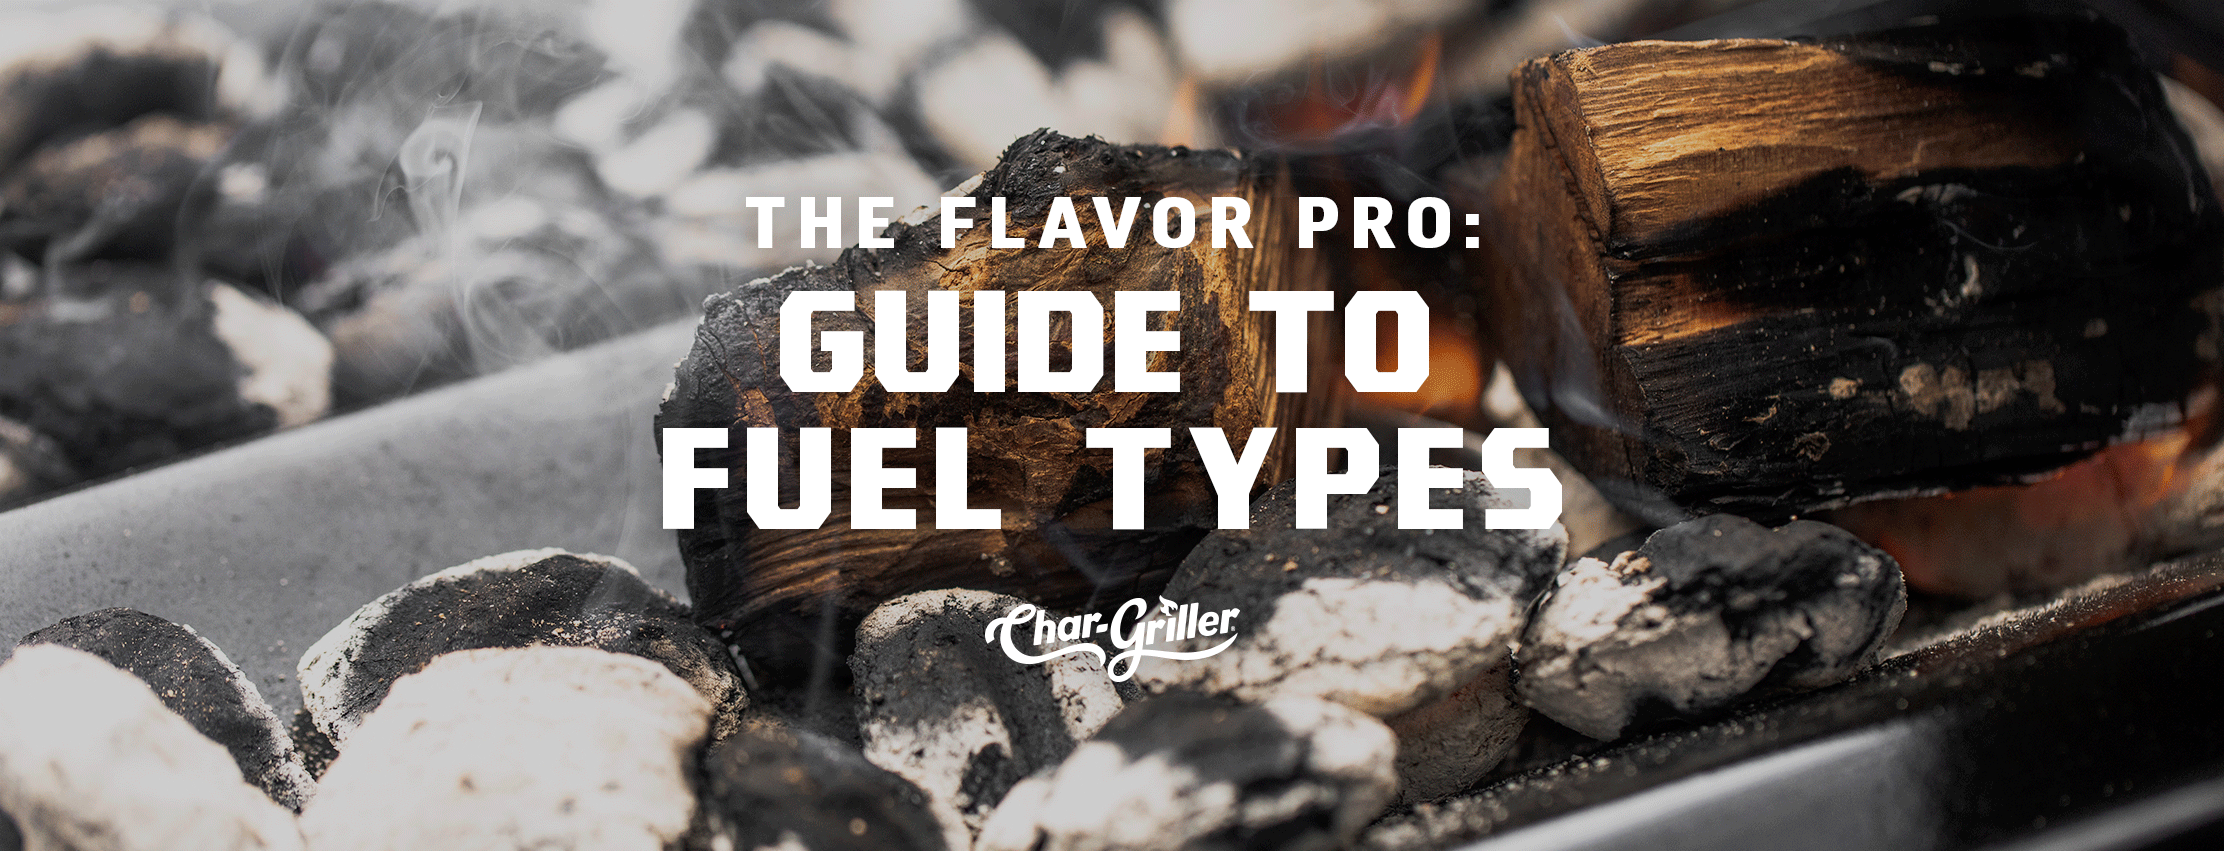 The Flavor Pro: Guide to Fuel Types